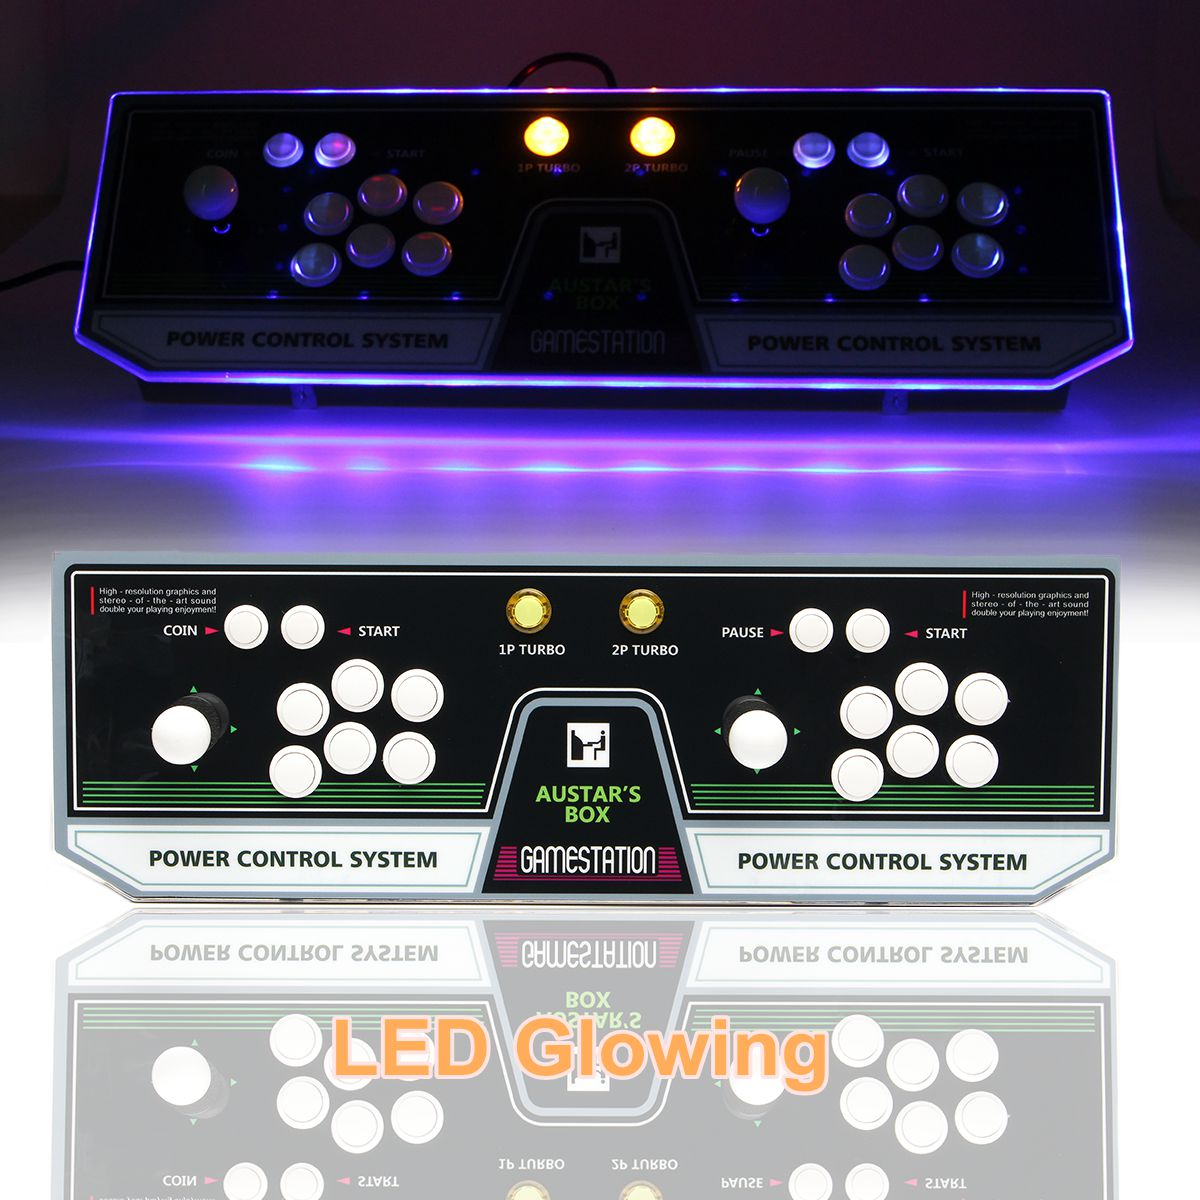 Box 5S 1299 in 1 Dual Player Double Joystick Arcade Game Console with Button Light Coin Operated Games стоимость